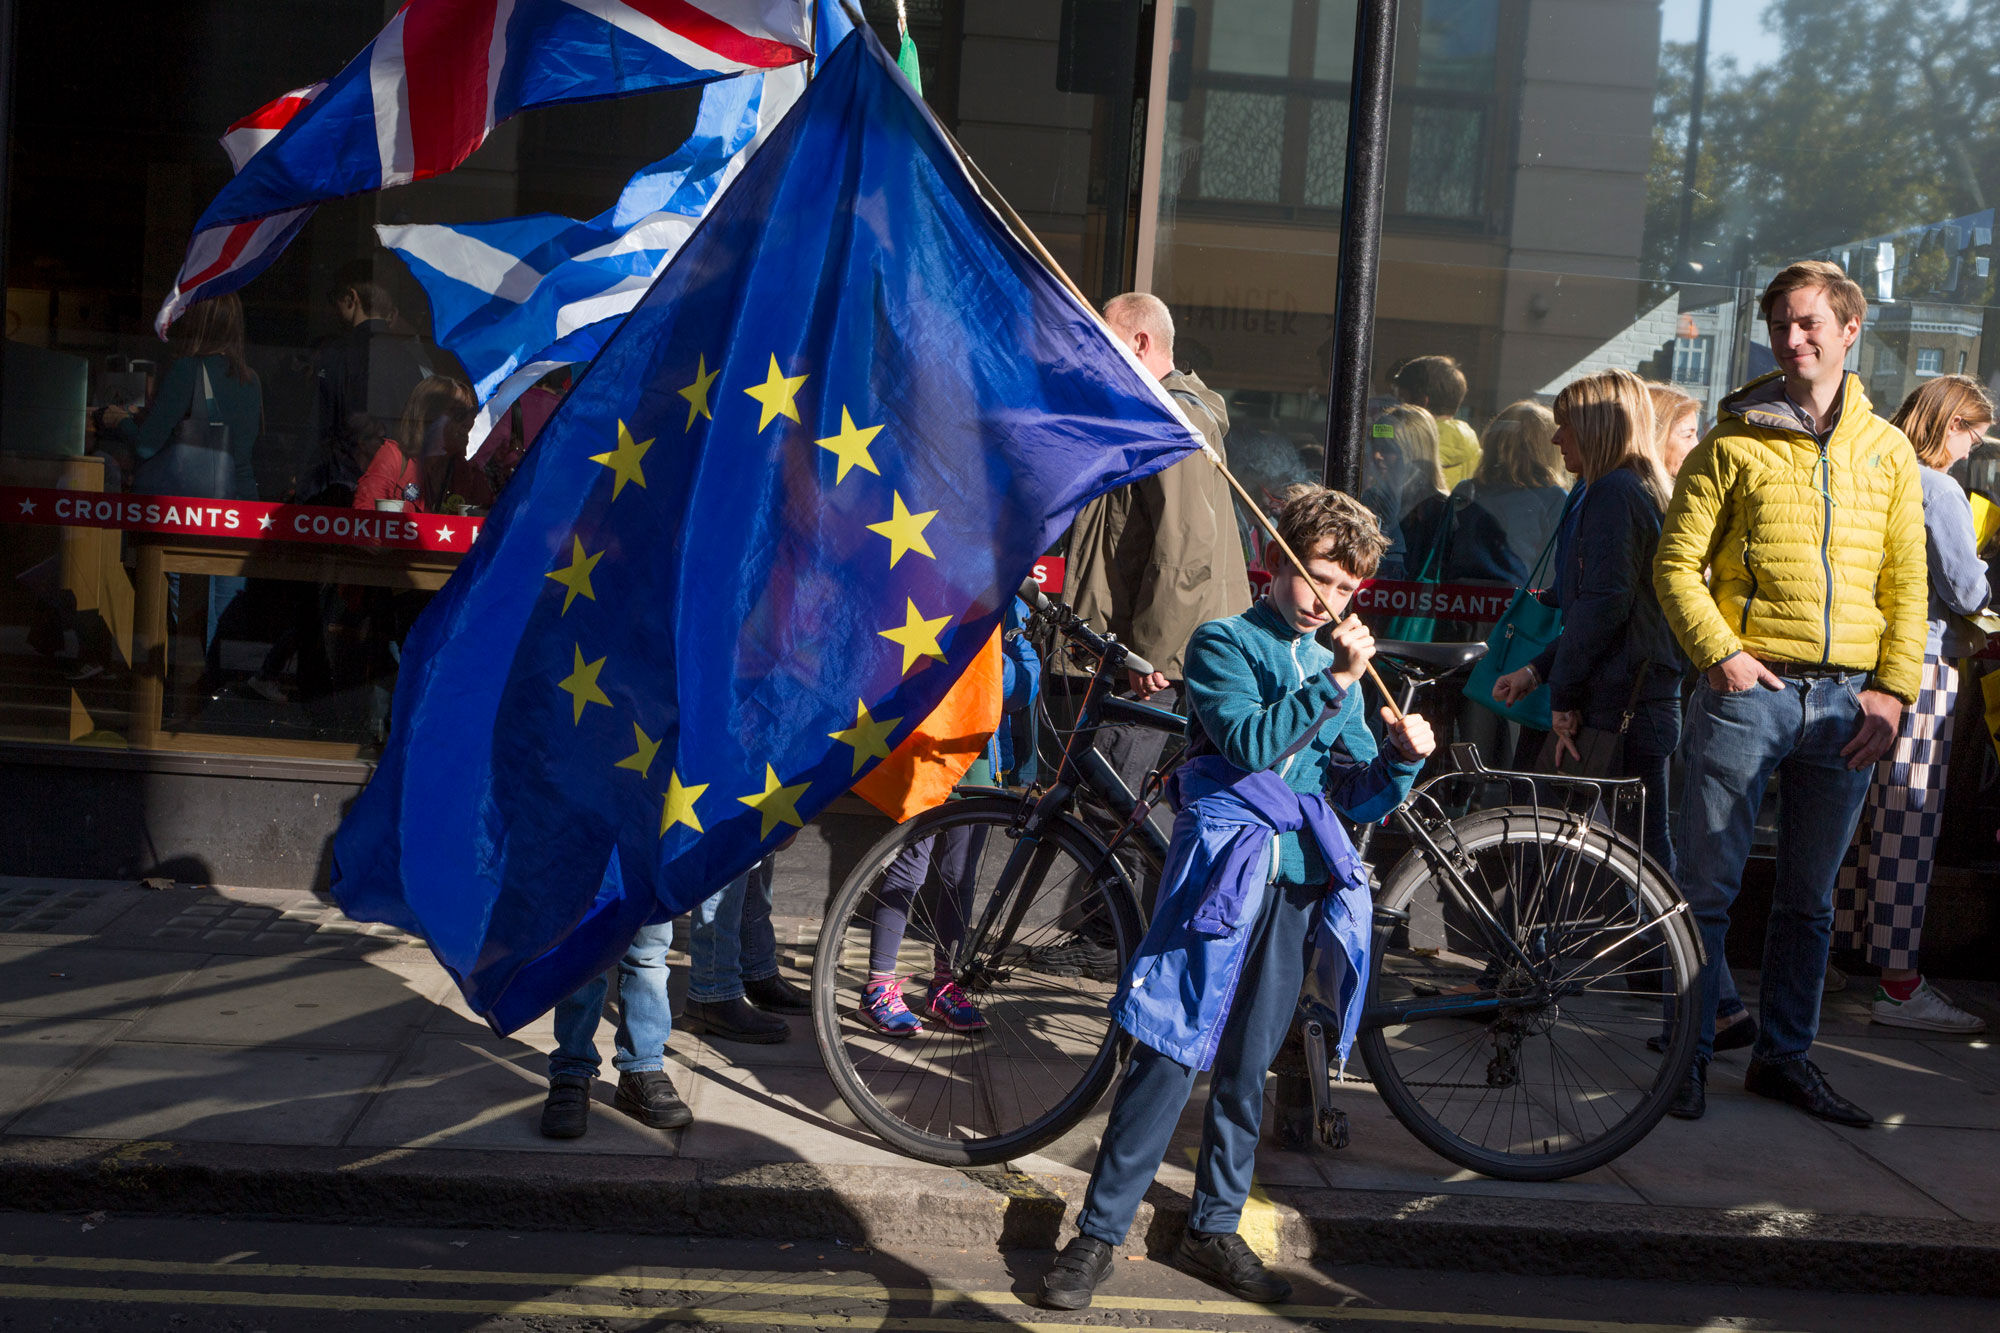 The Peoples Vote March For The Future, October 20, 2018 in London, United Kingdom. Photo by Richard Baker/In Pictures via Getty Images.